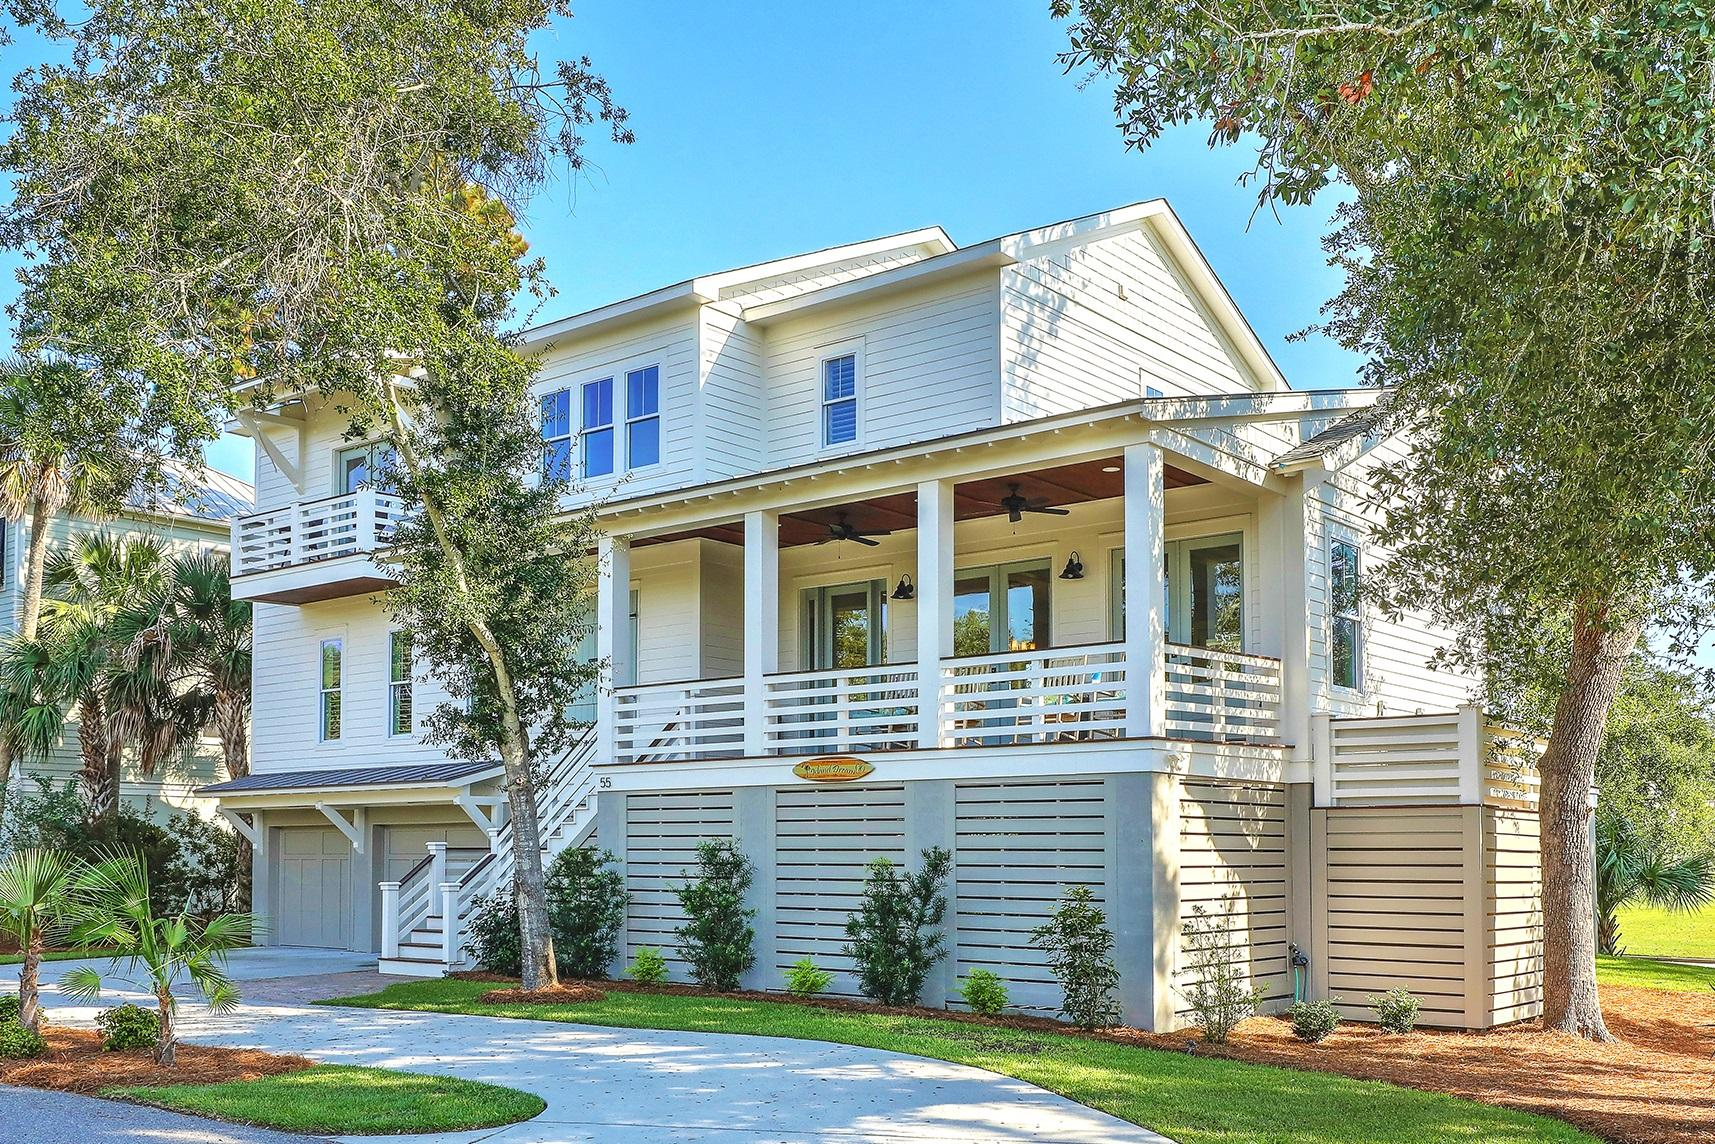 Wild Dunes Homes For Sale - 55 Seagrass, Isle of Palms, SC - 4